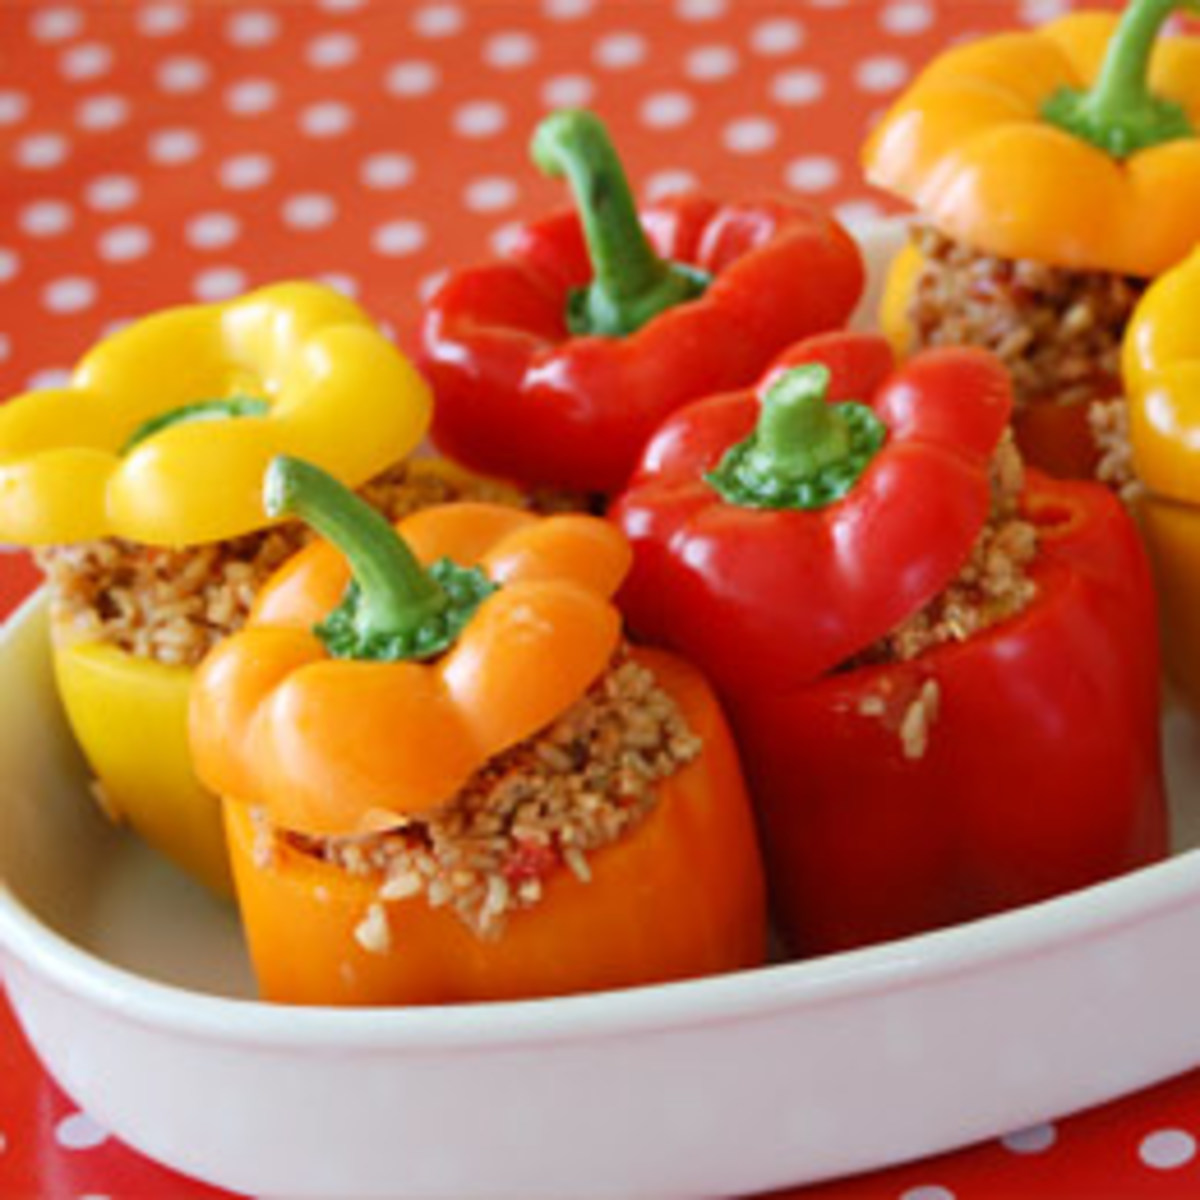 Save the bell pepper tops for a nice presentation